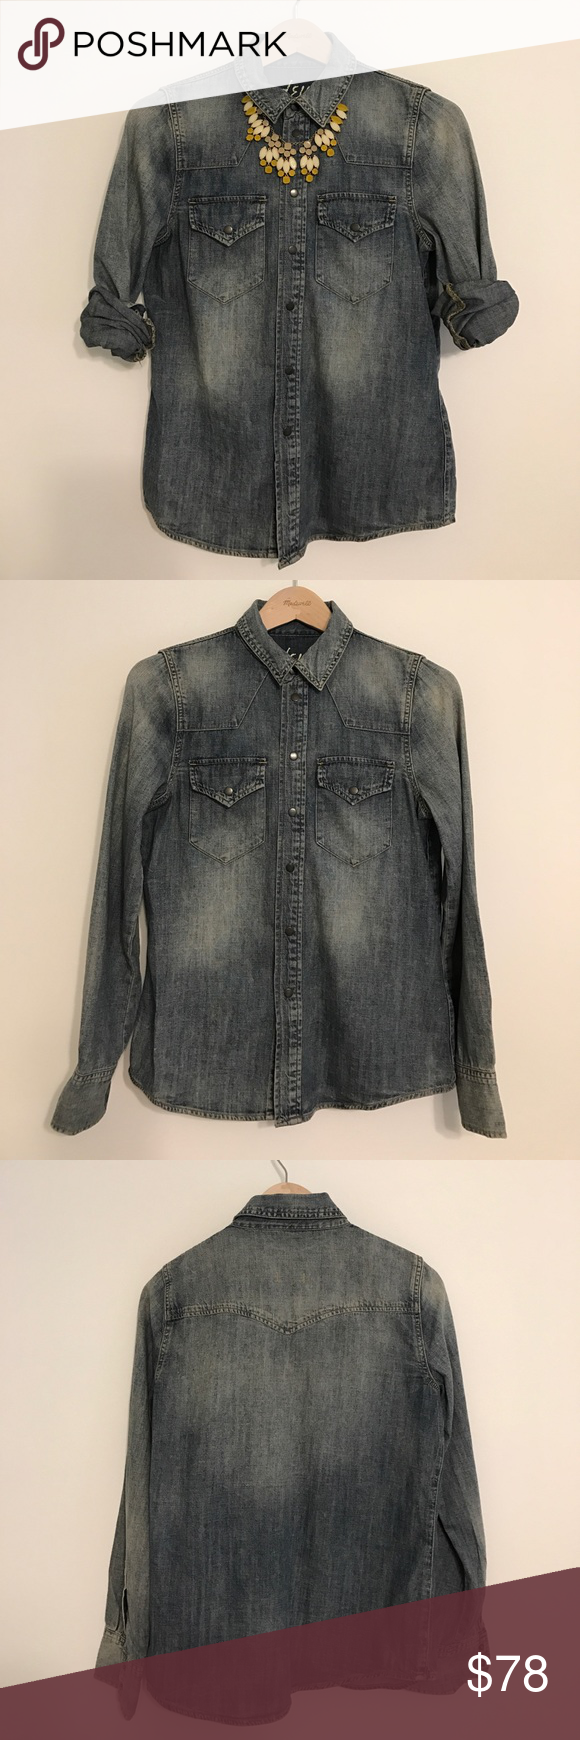 Madewell western style denim shirt. Madewell western style denim shirt.  Snap front closure.  Snap front patch pockets and snaps at cuffs. Madewell Tops